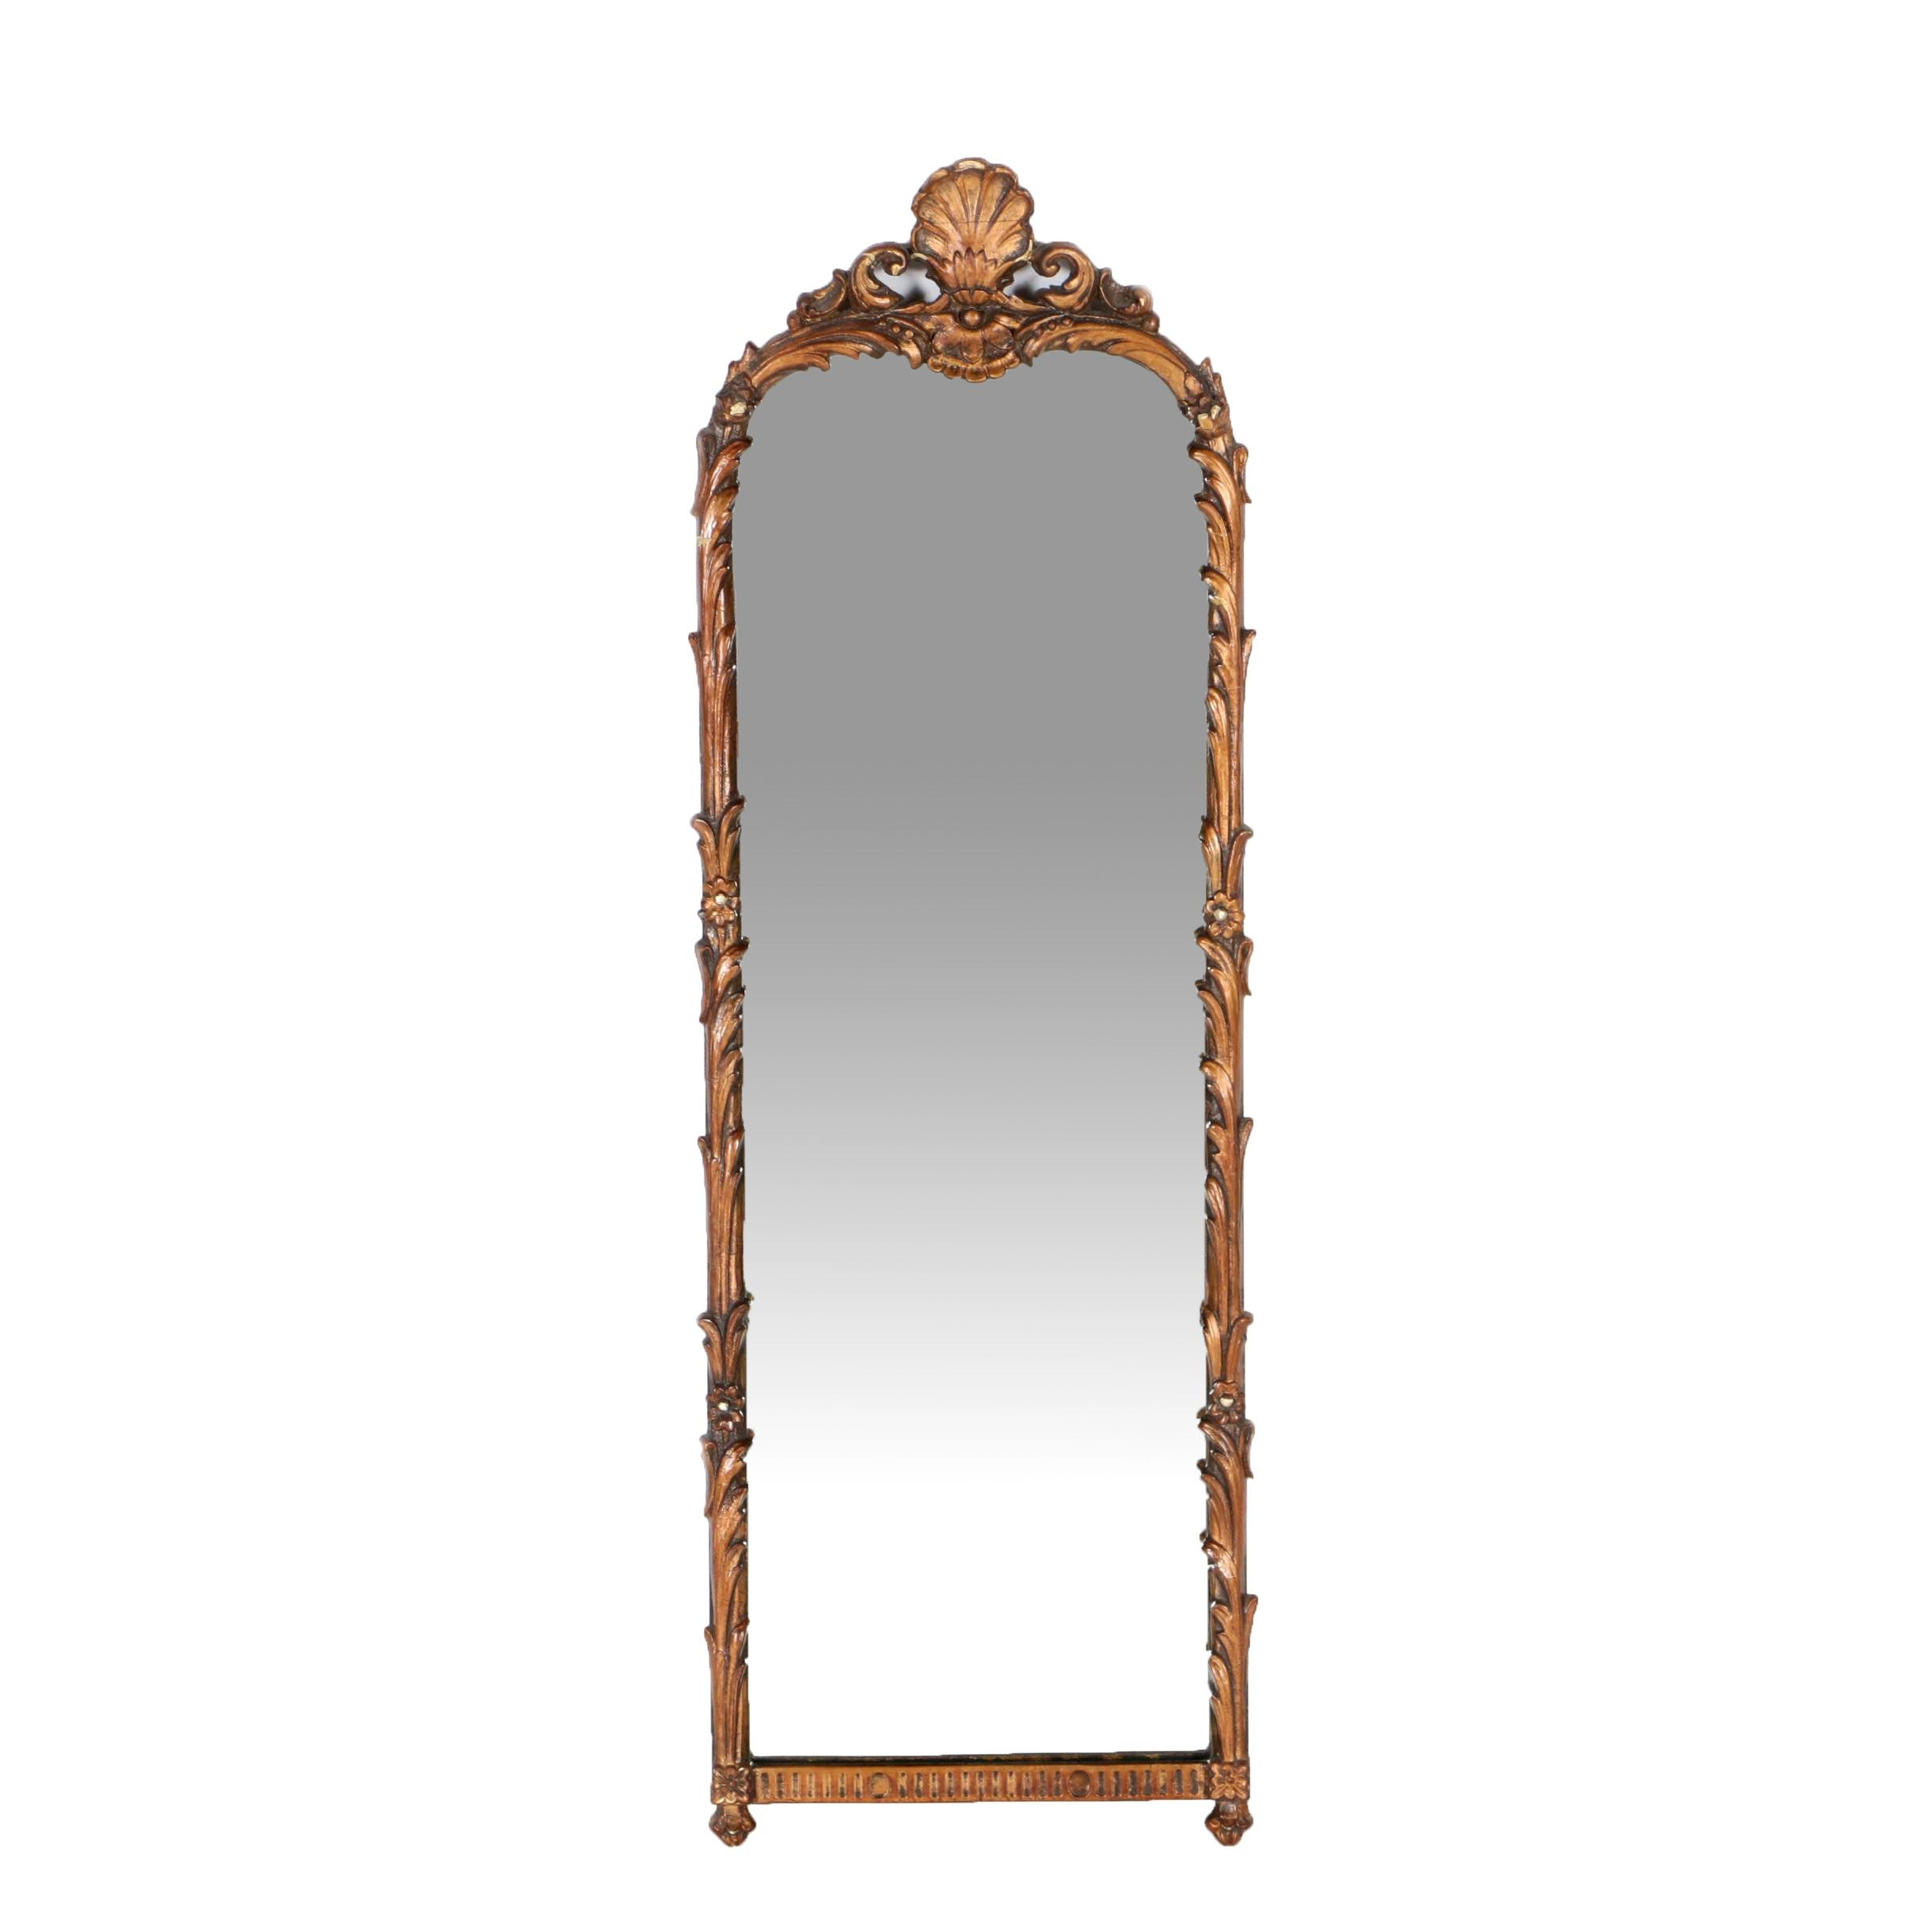 Wood Framed Mirror with Rocaille and Acanthus Detail